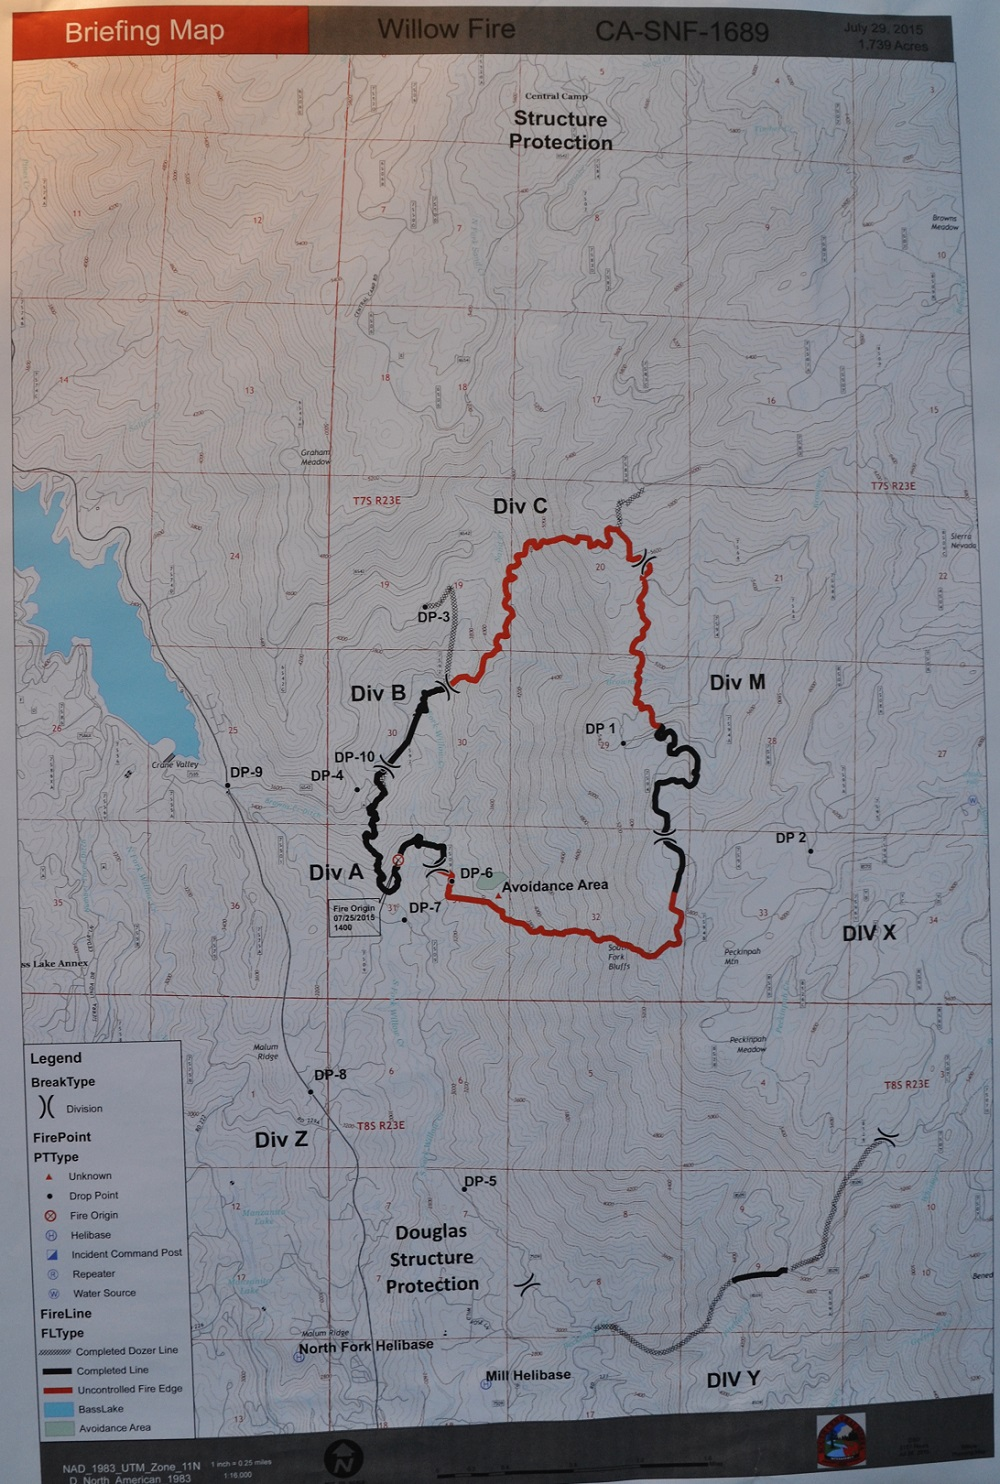 Willow Fire perimeter map 7-29-15 morning briefing